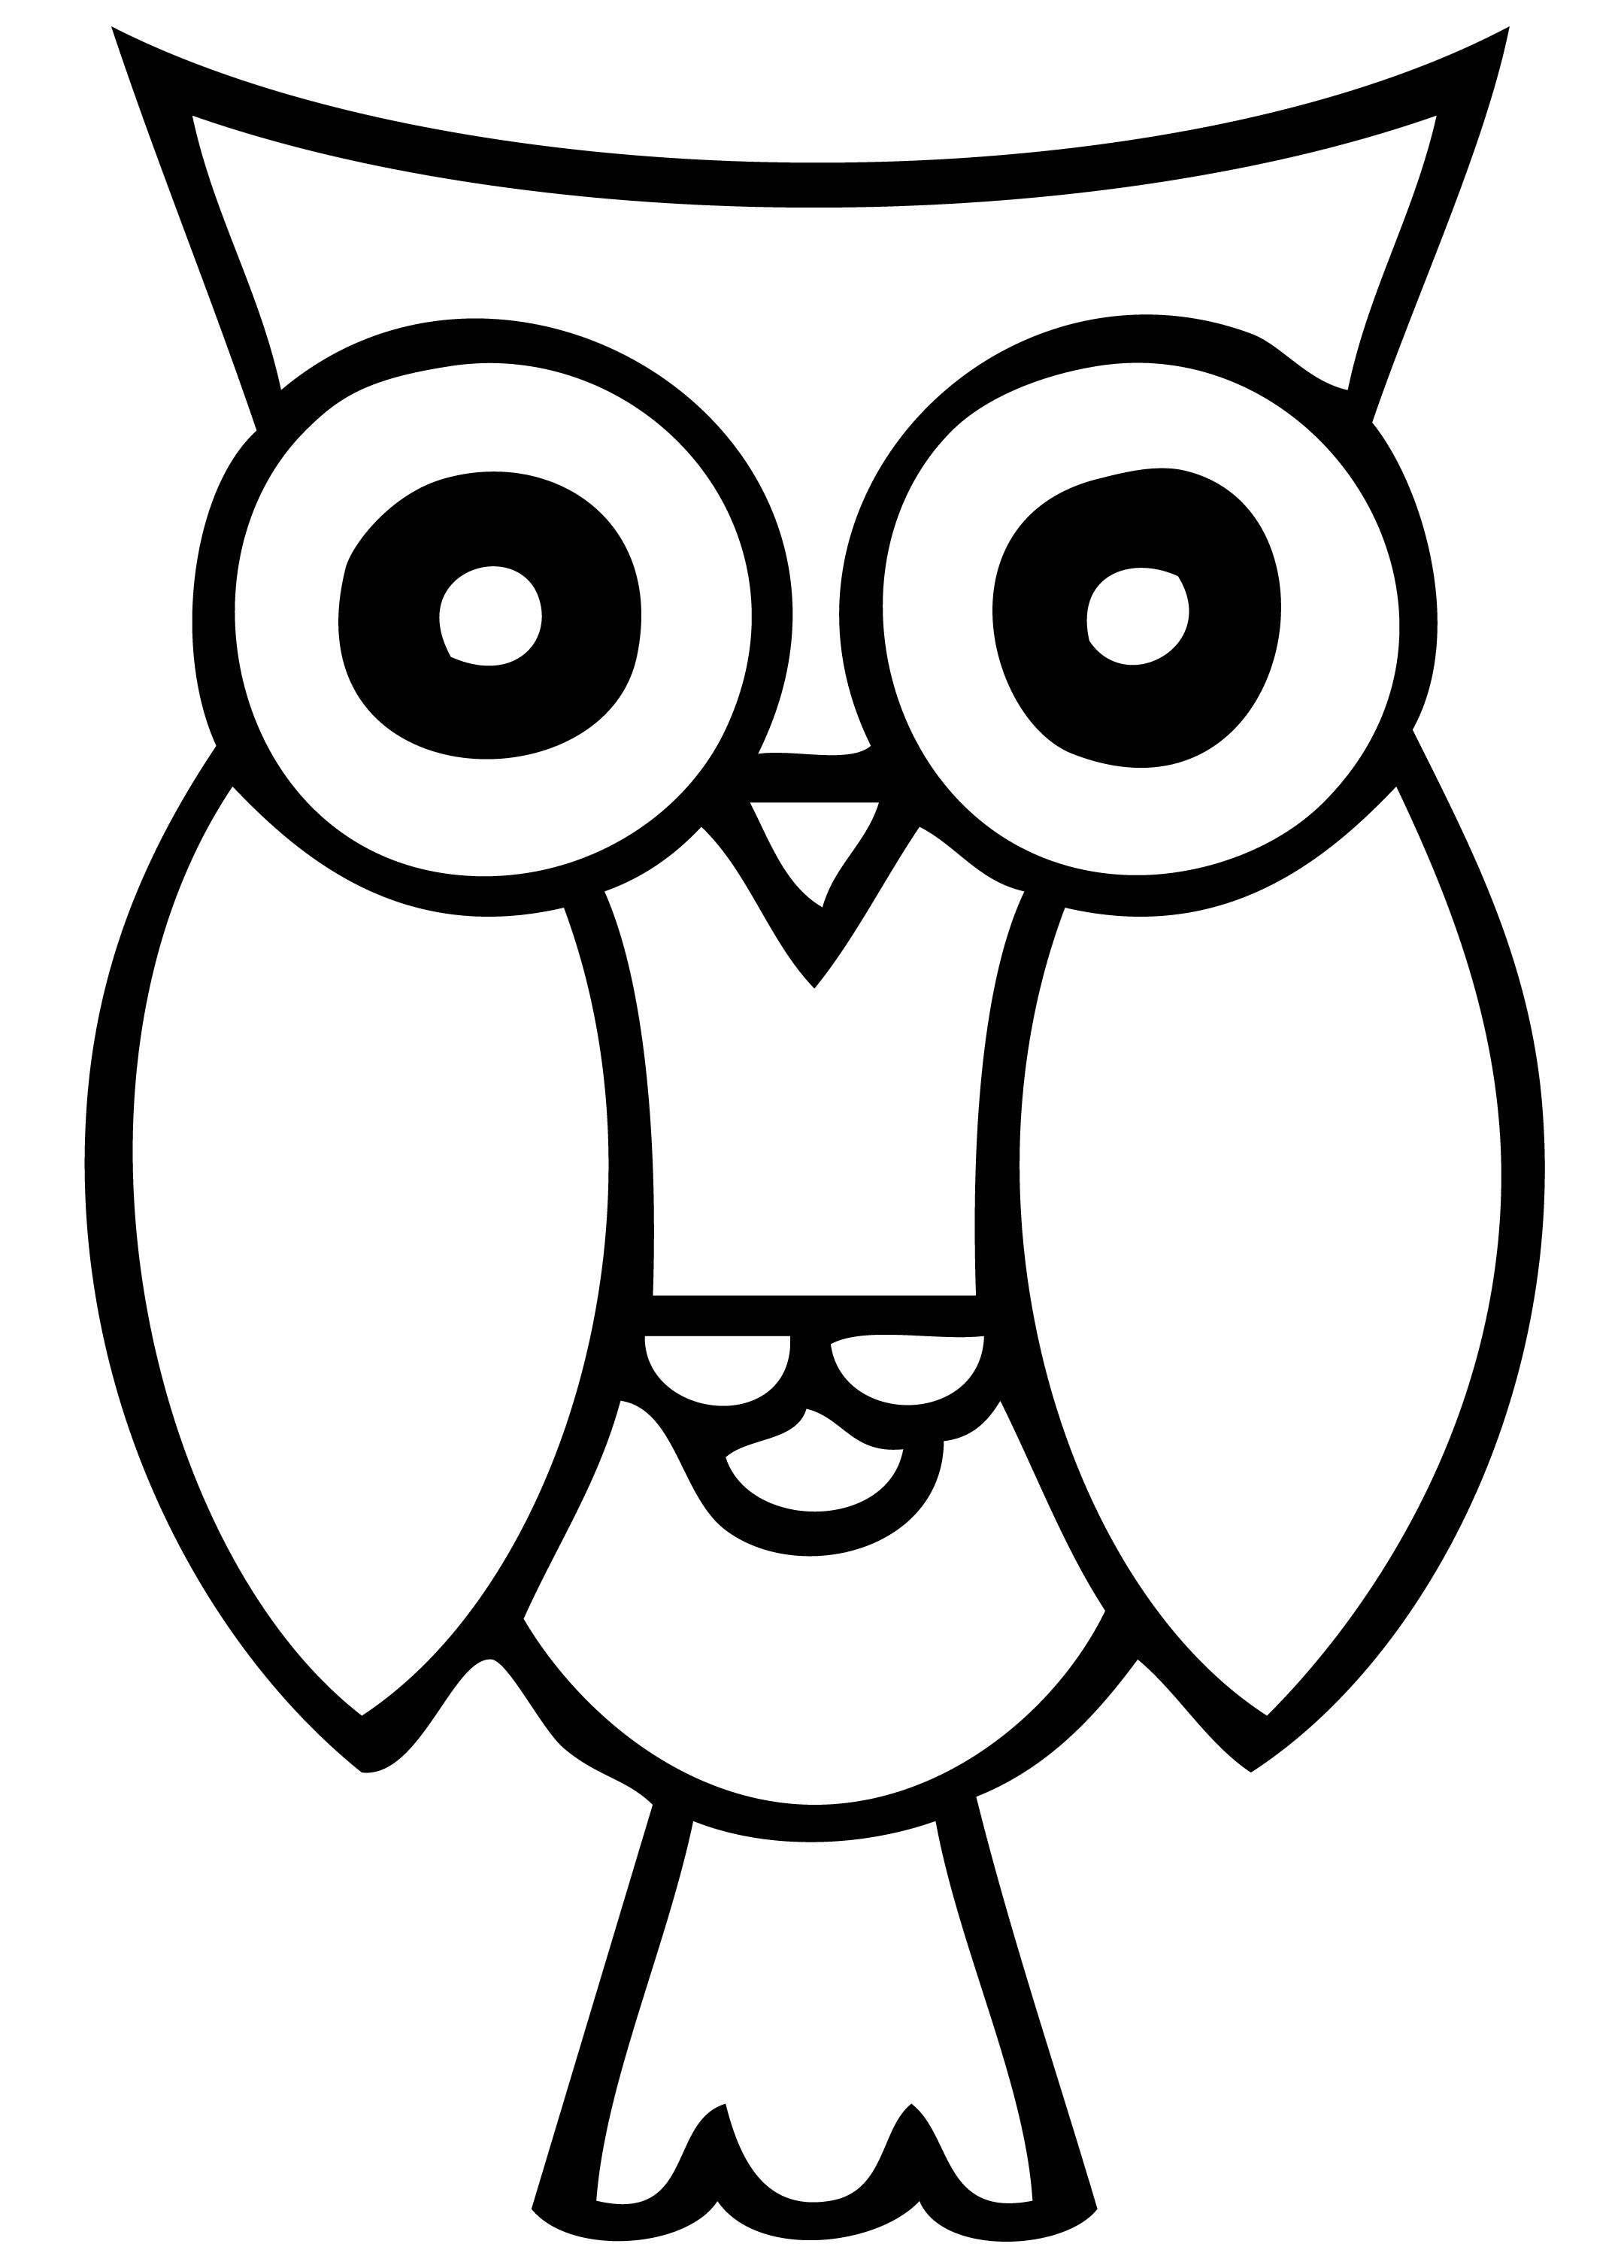 Owl at night black and white clipart